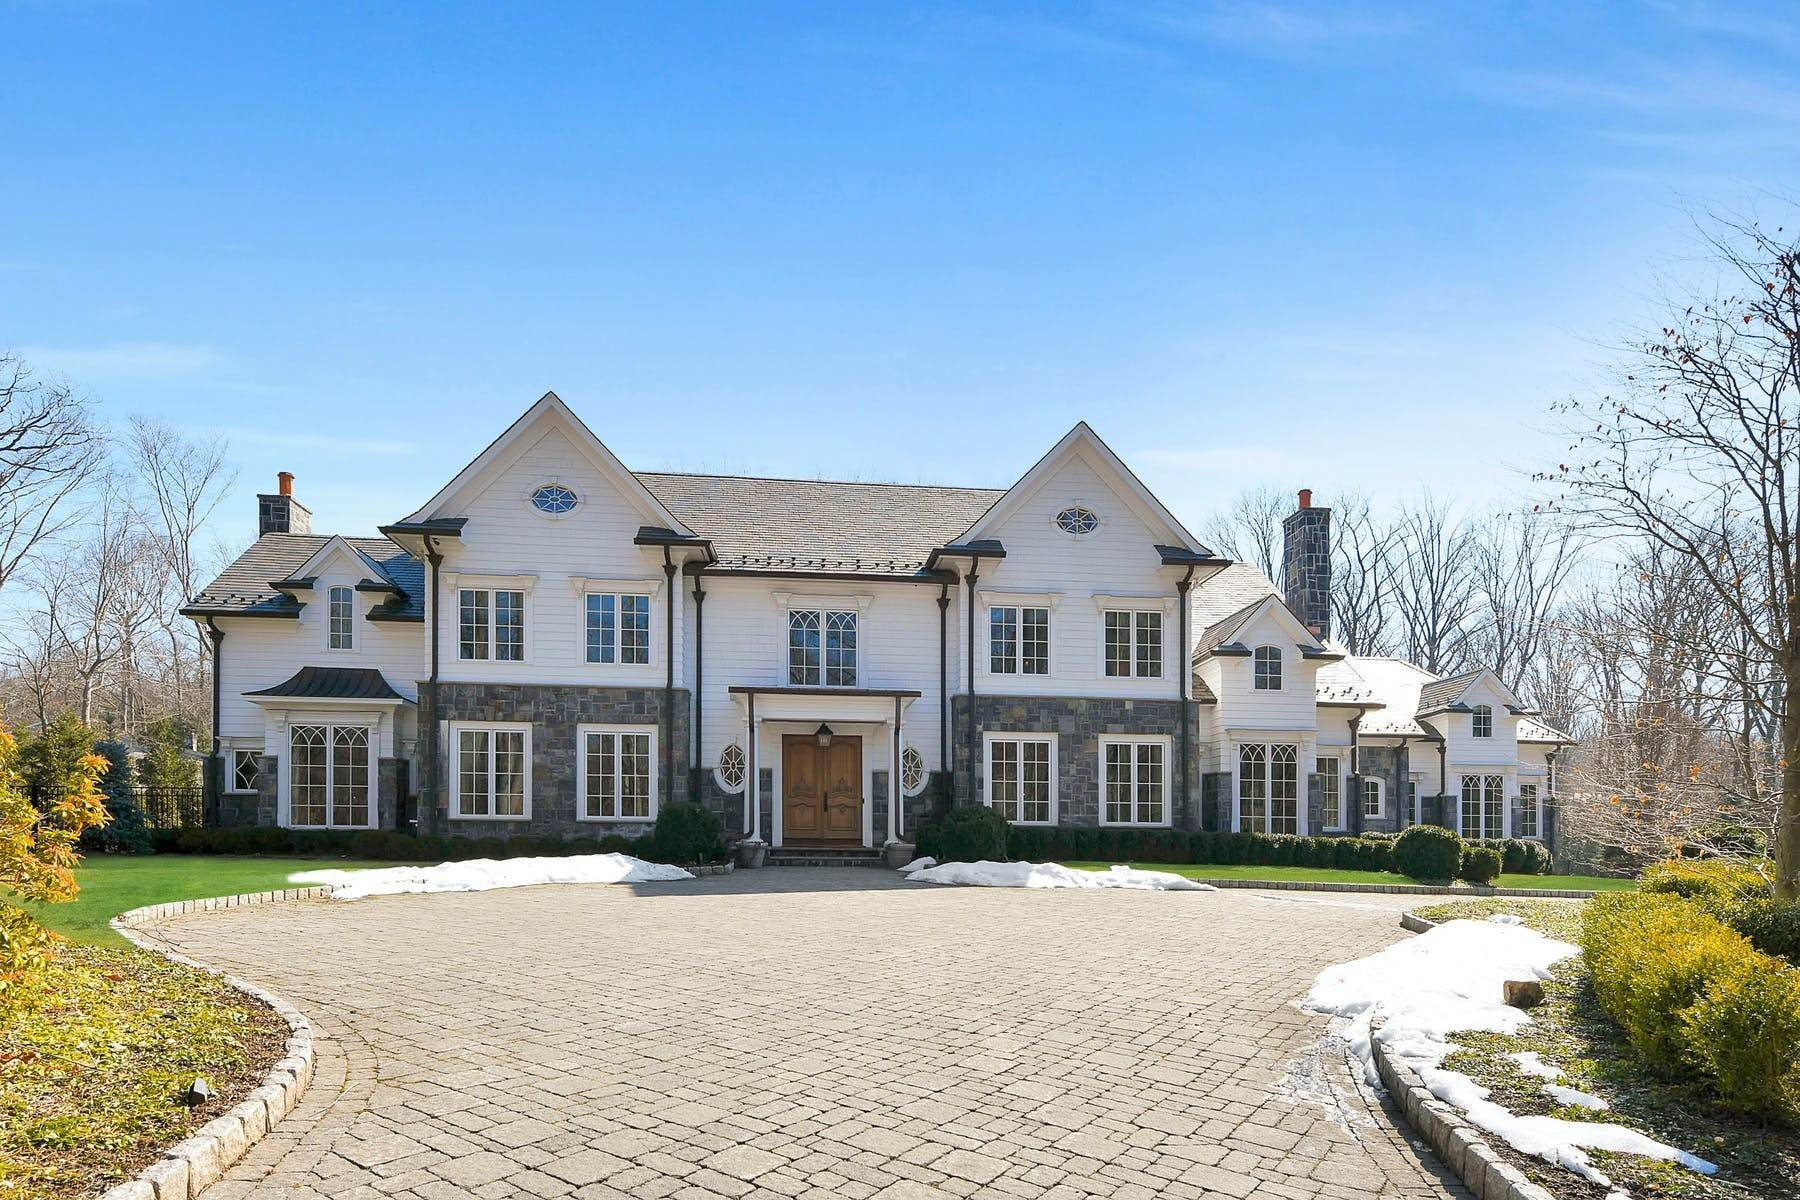 Single Family Homes for Sale at Exquisite Manor Estate 19 Werimus Brook Rd Saddle River, New Jersey 07458 United States